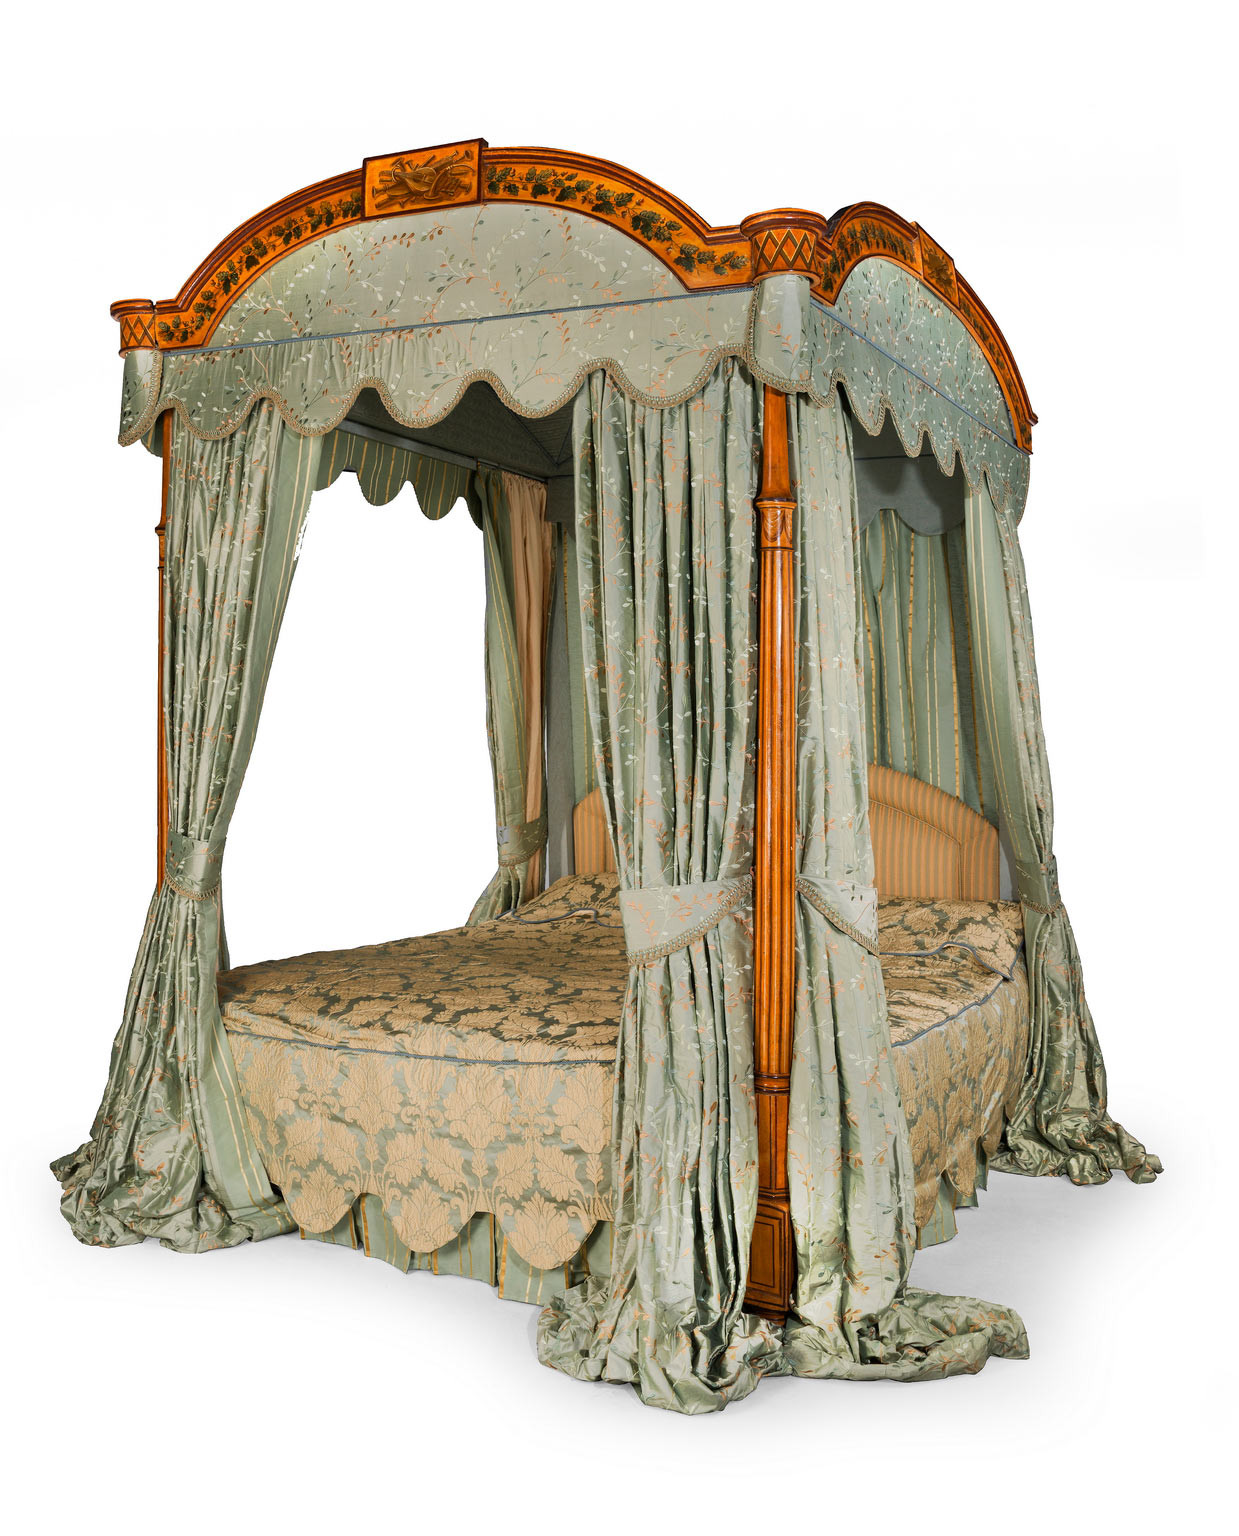 How To Use A Four Poster Bed Canopy To Good Effect: Your Home Thoughts: Different Types Of Bedroom Furniture